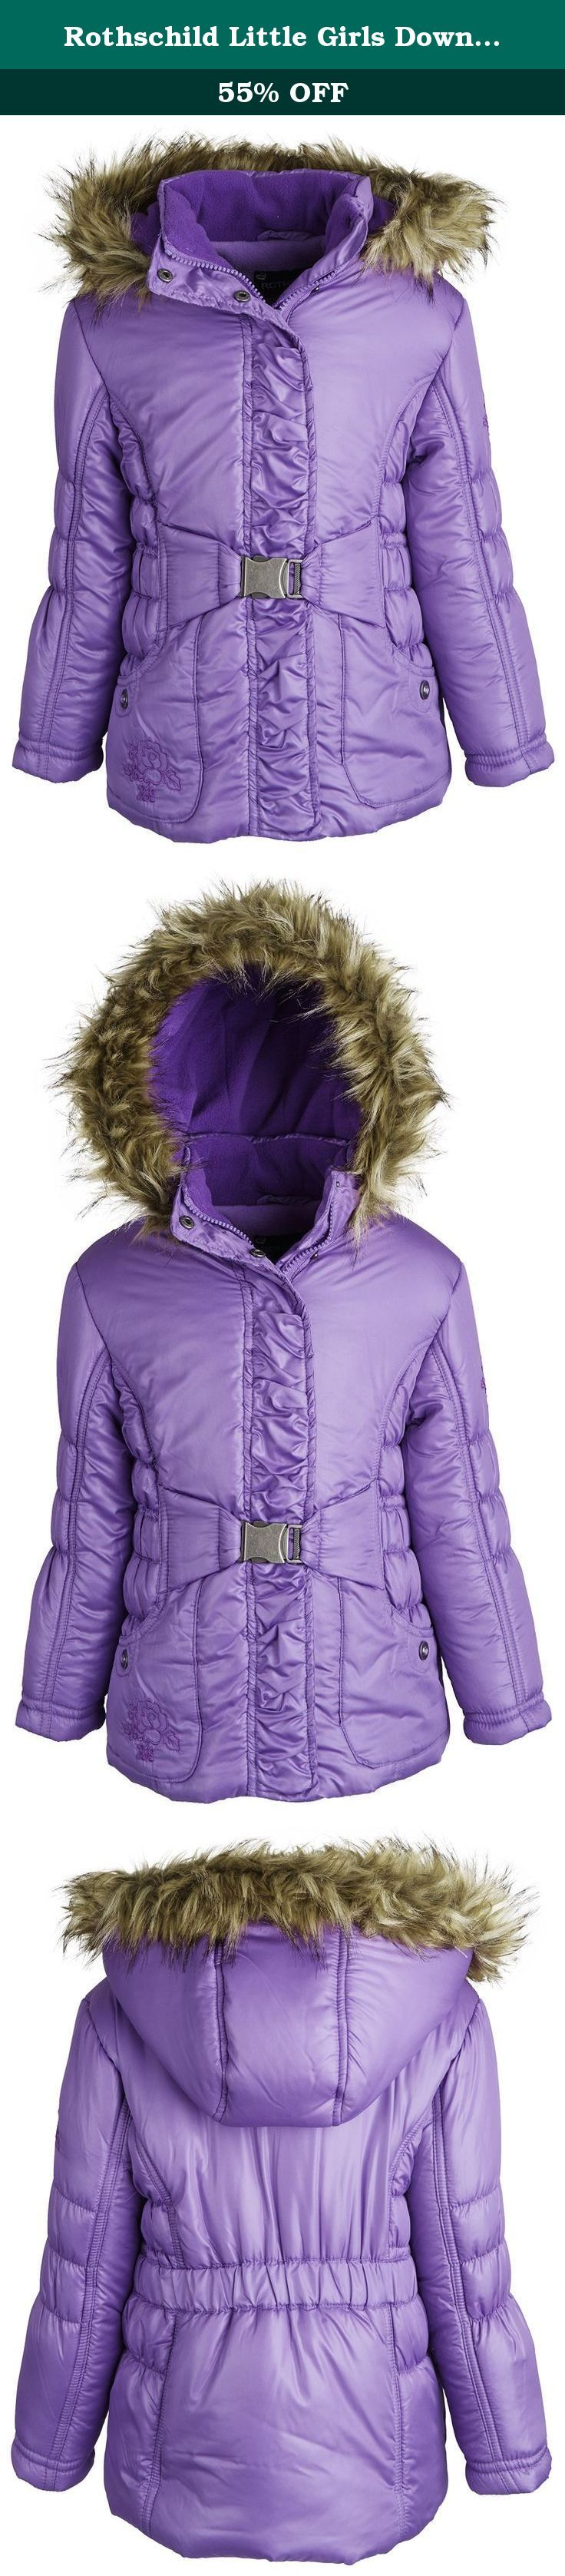 Rothschild Little Girls Down Alternative Fleece Winter Puffer Bubble Jacket Coat - Iris (size 3T). Bundle up your little angel in this lovely puffer jacket by Rothschild. Ultra soft full fleece lining along with its faux fur trimmed hood and thick filling will definitely help her cope those extreme weathers. Elasticized waist with buckle and gathered placket will surely please moms and daughters taste alike. Available in colors Rubylight and Sapphire and in sizes 2T to 6X.